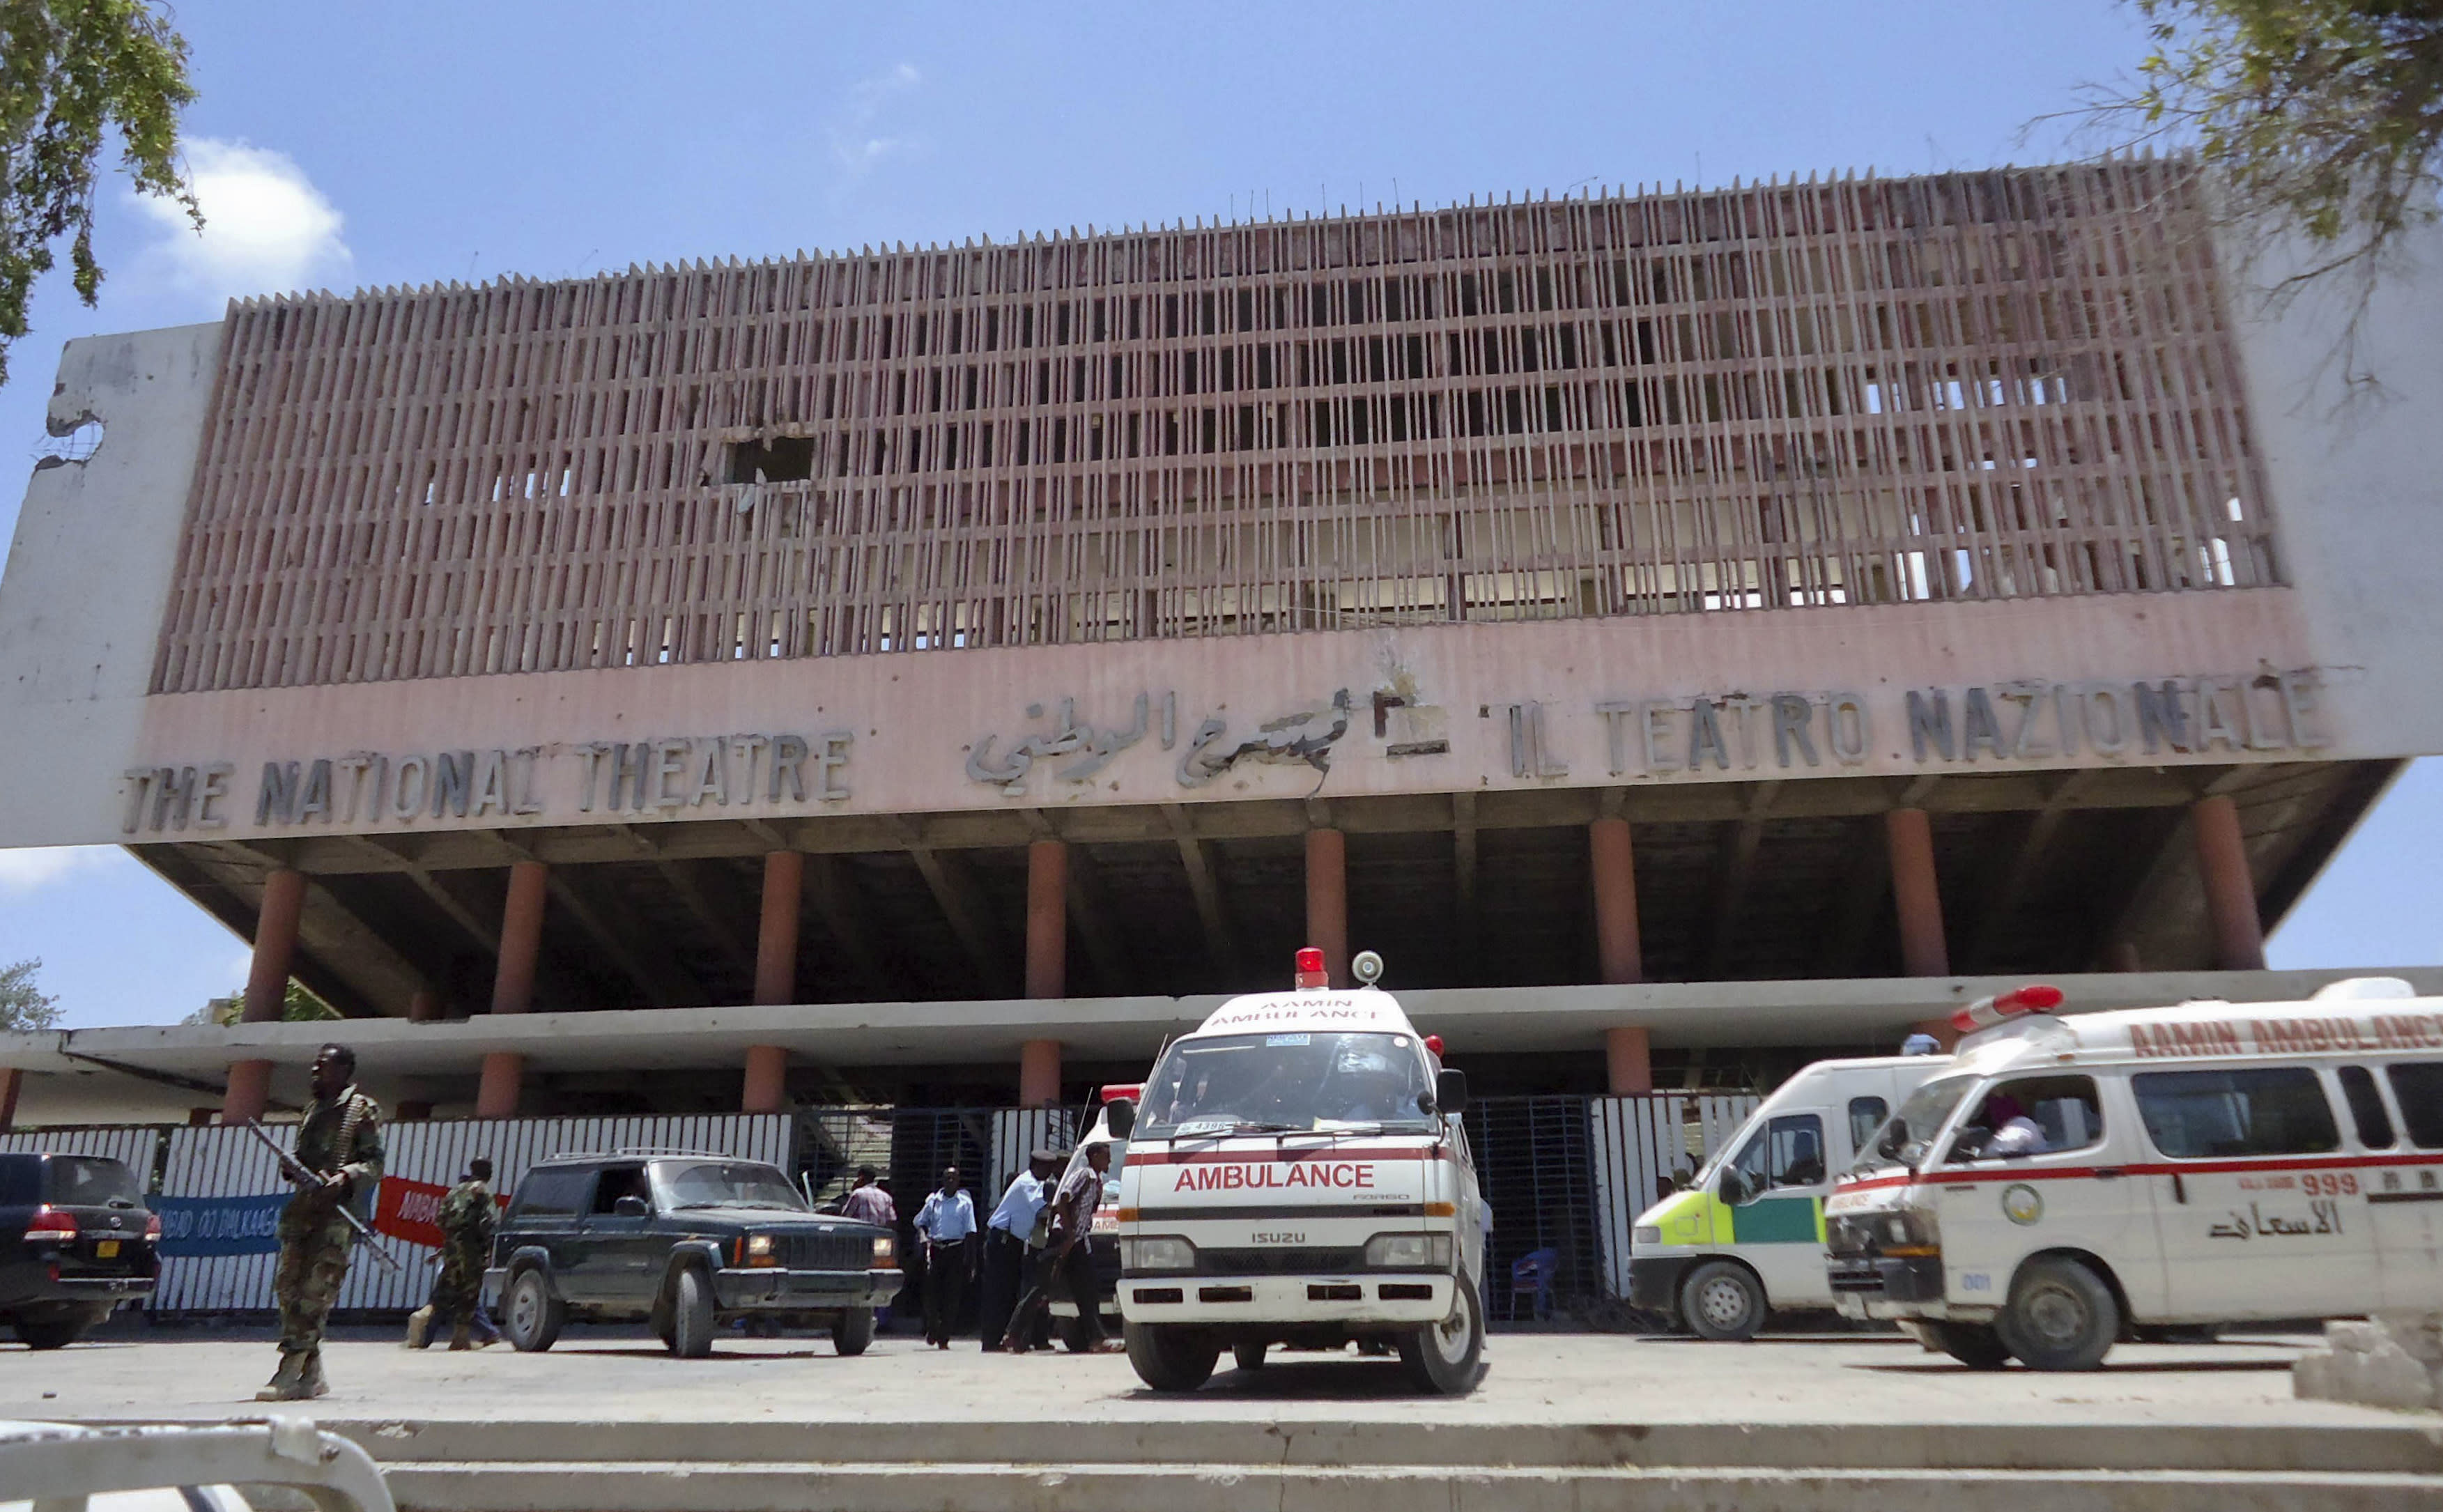 Ambulances stand outside the Somali National Theater in Mogadishu, Somalia Wednesday, April 4, 2012. An explosion Wednesday at a ceremony at Somalia's national theater killed at least 10 people including two top sports officials in an attack by an Islamist group on a site that symbolized the city's attempt to rise from two decades of war. (AP Photo/Farah Abdi Warsameh)